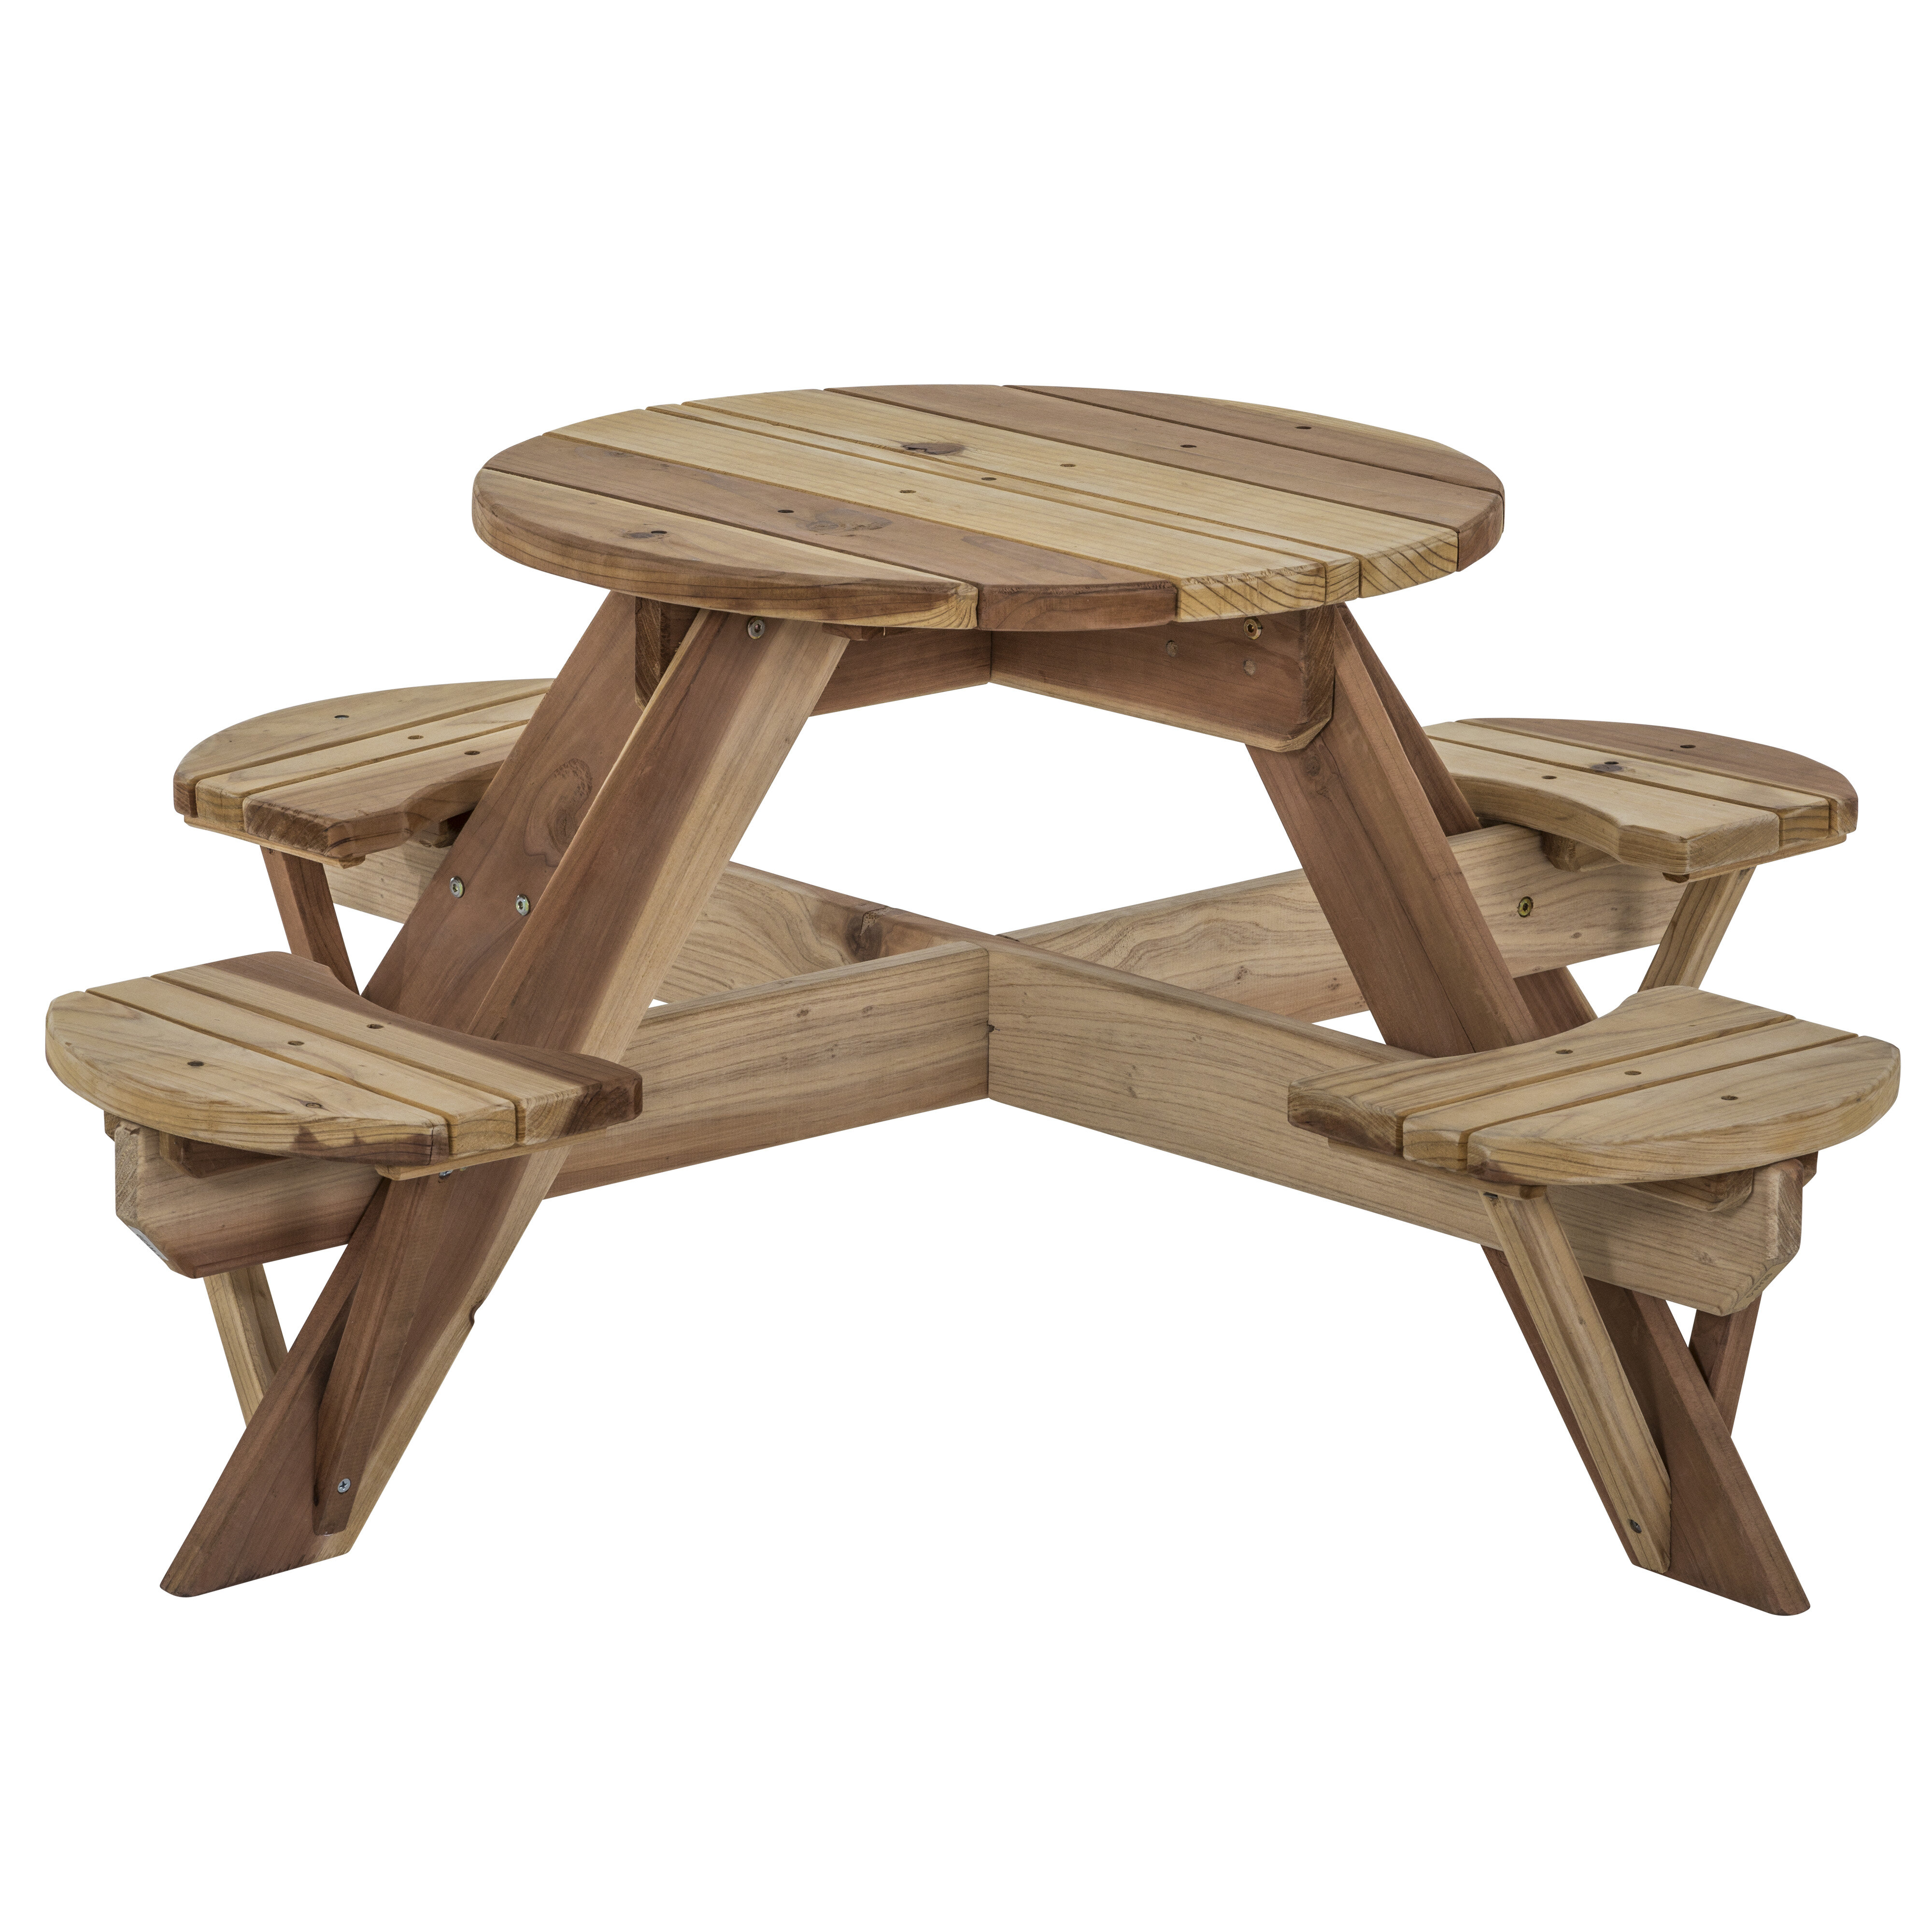 Wondrous Kids Picnic Table Wayfair Ca Download Free Architecture Designs Scobabritishbridgeorg